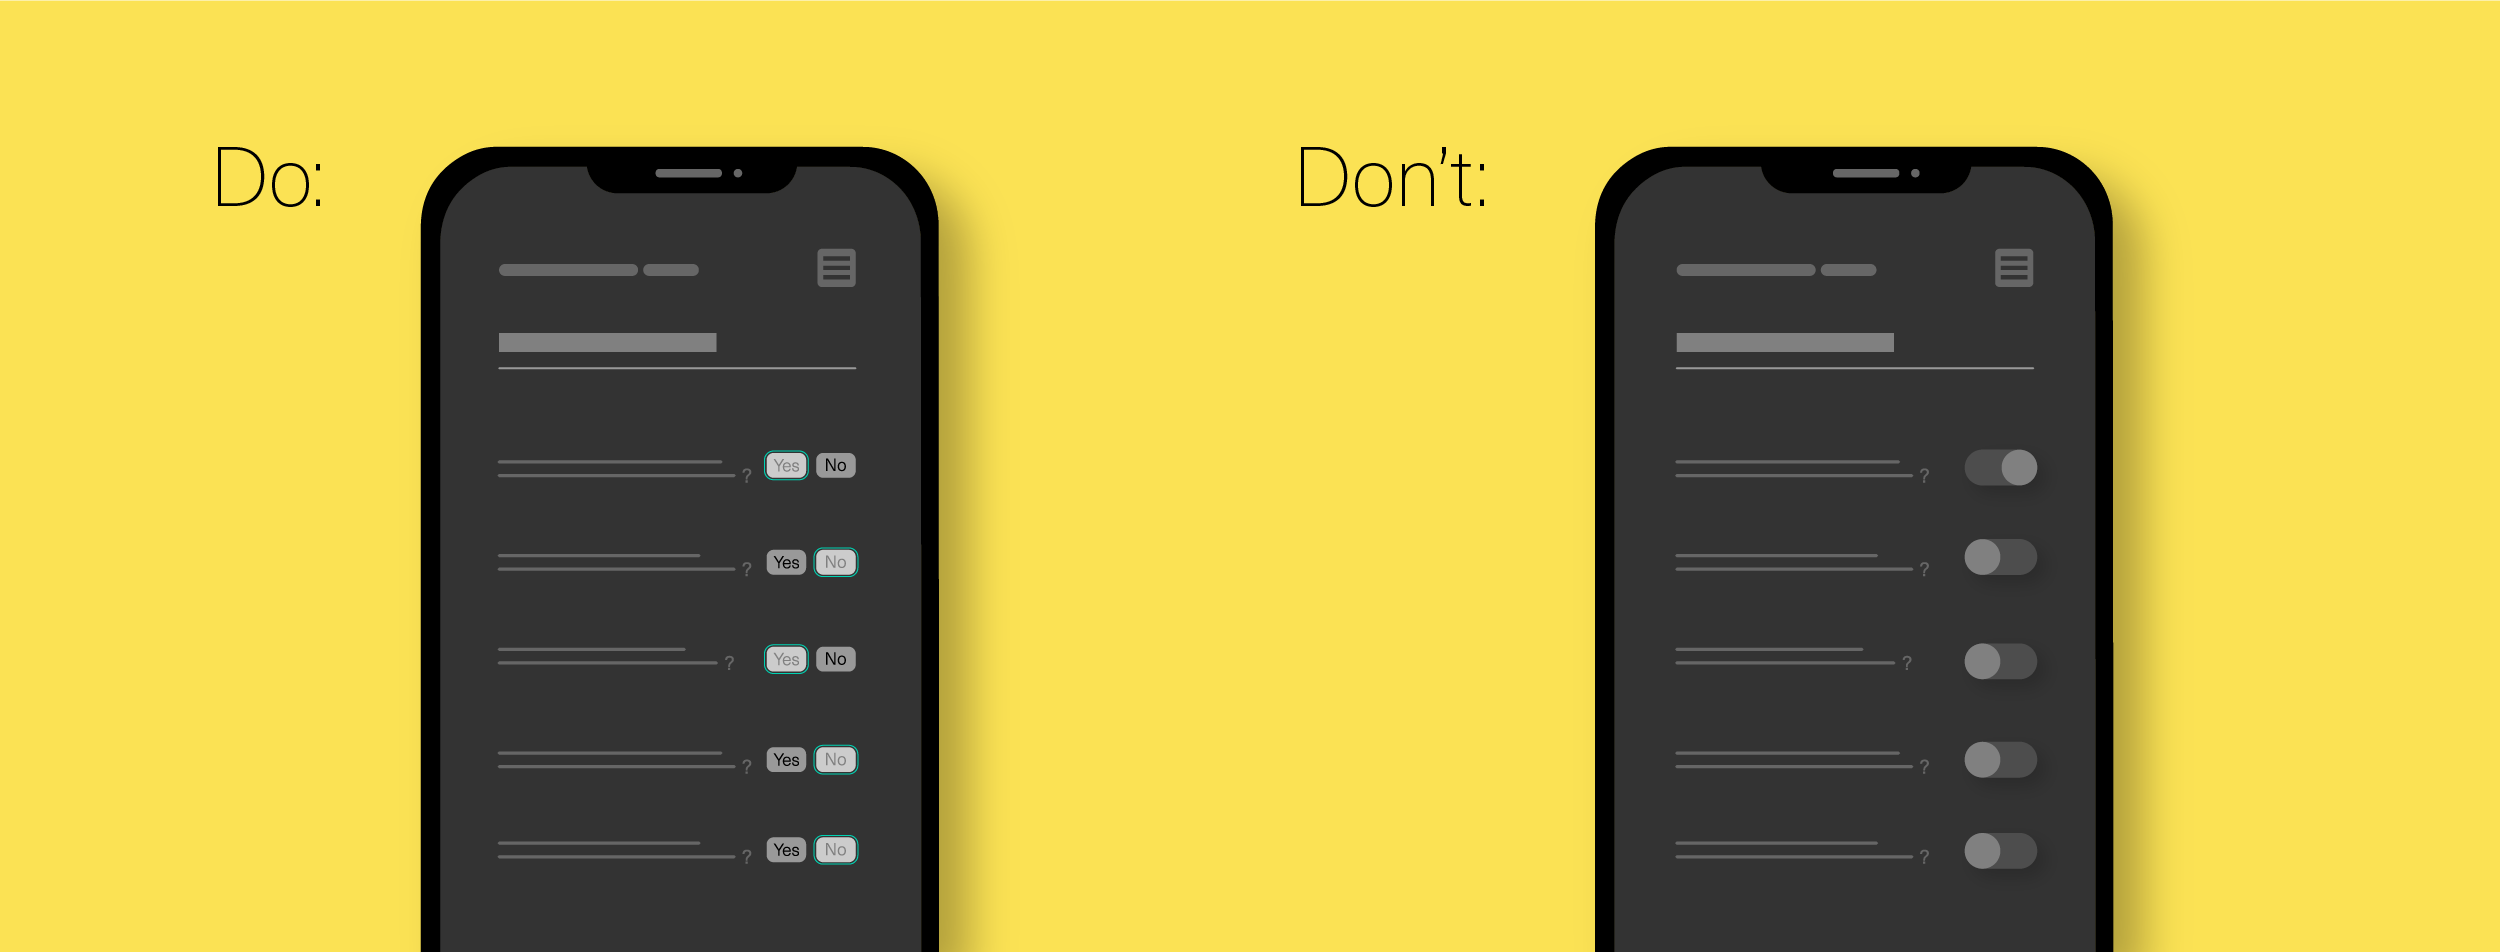 unclear user interface design for mobile app